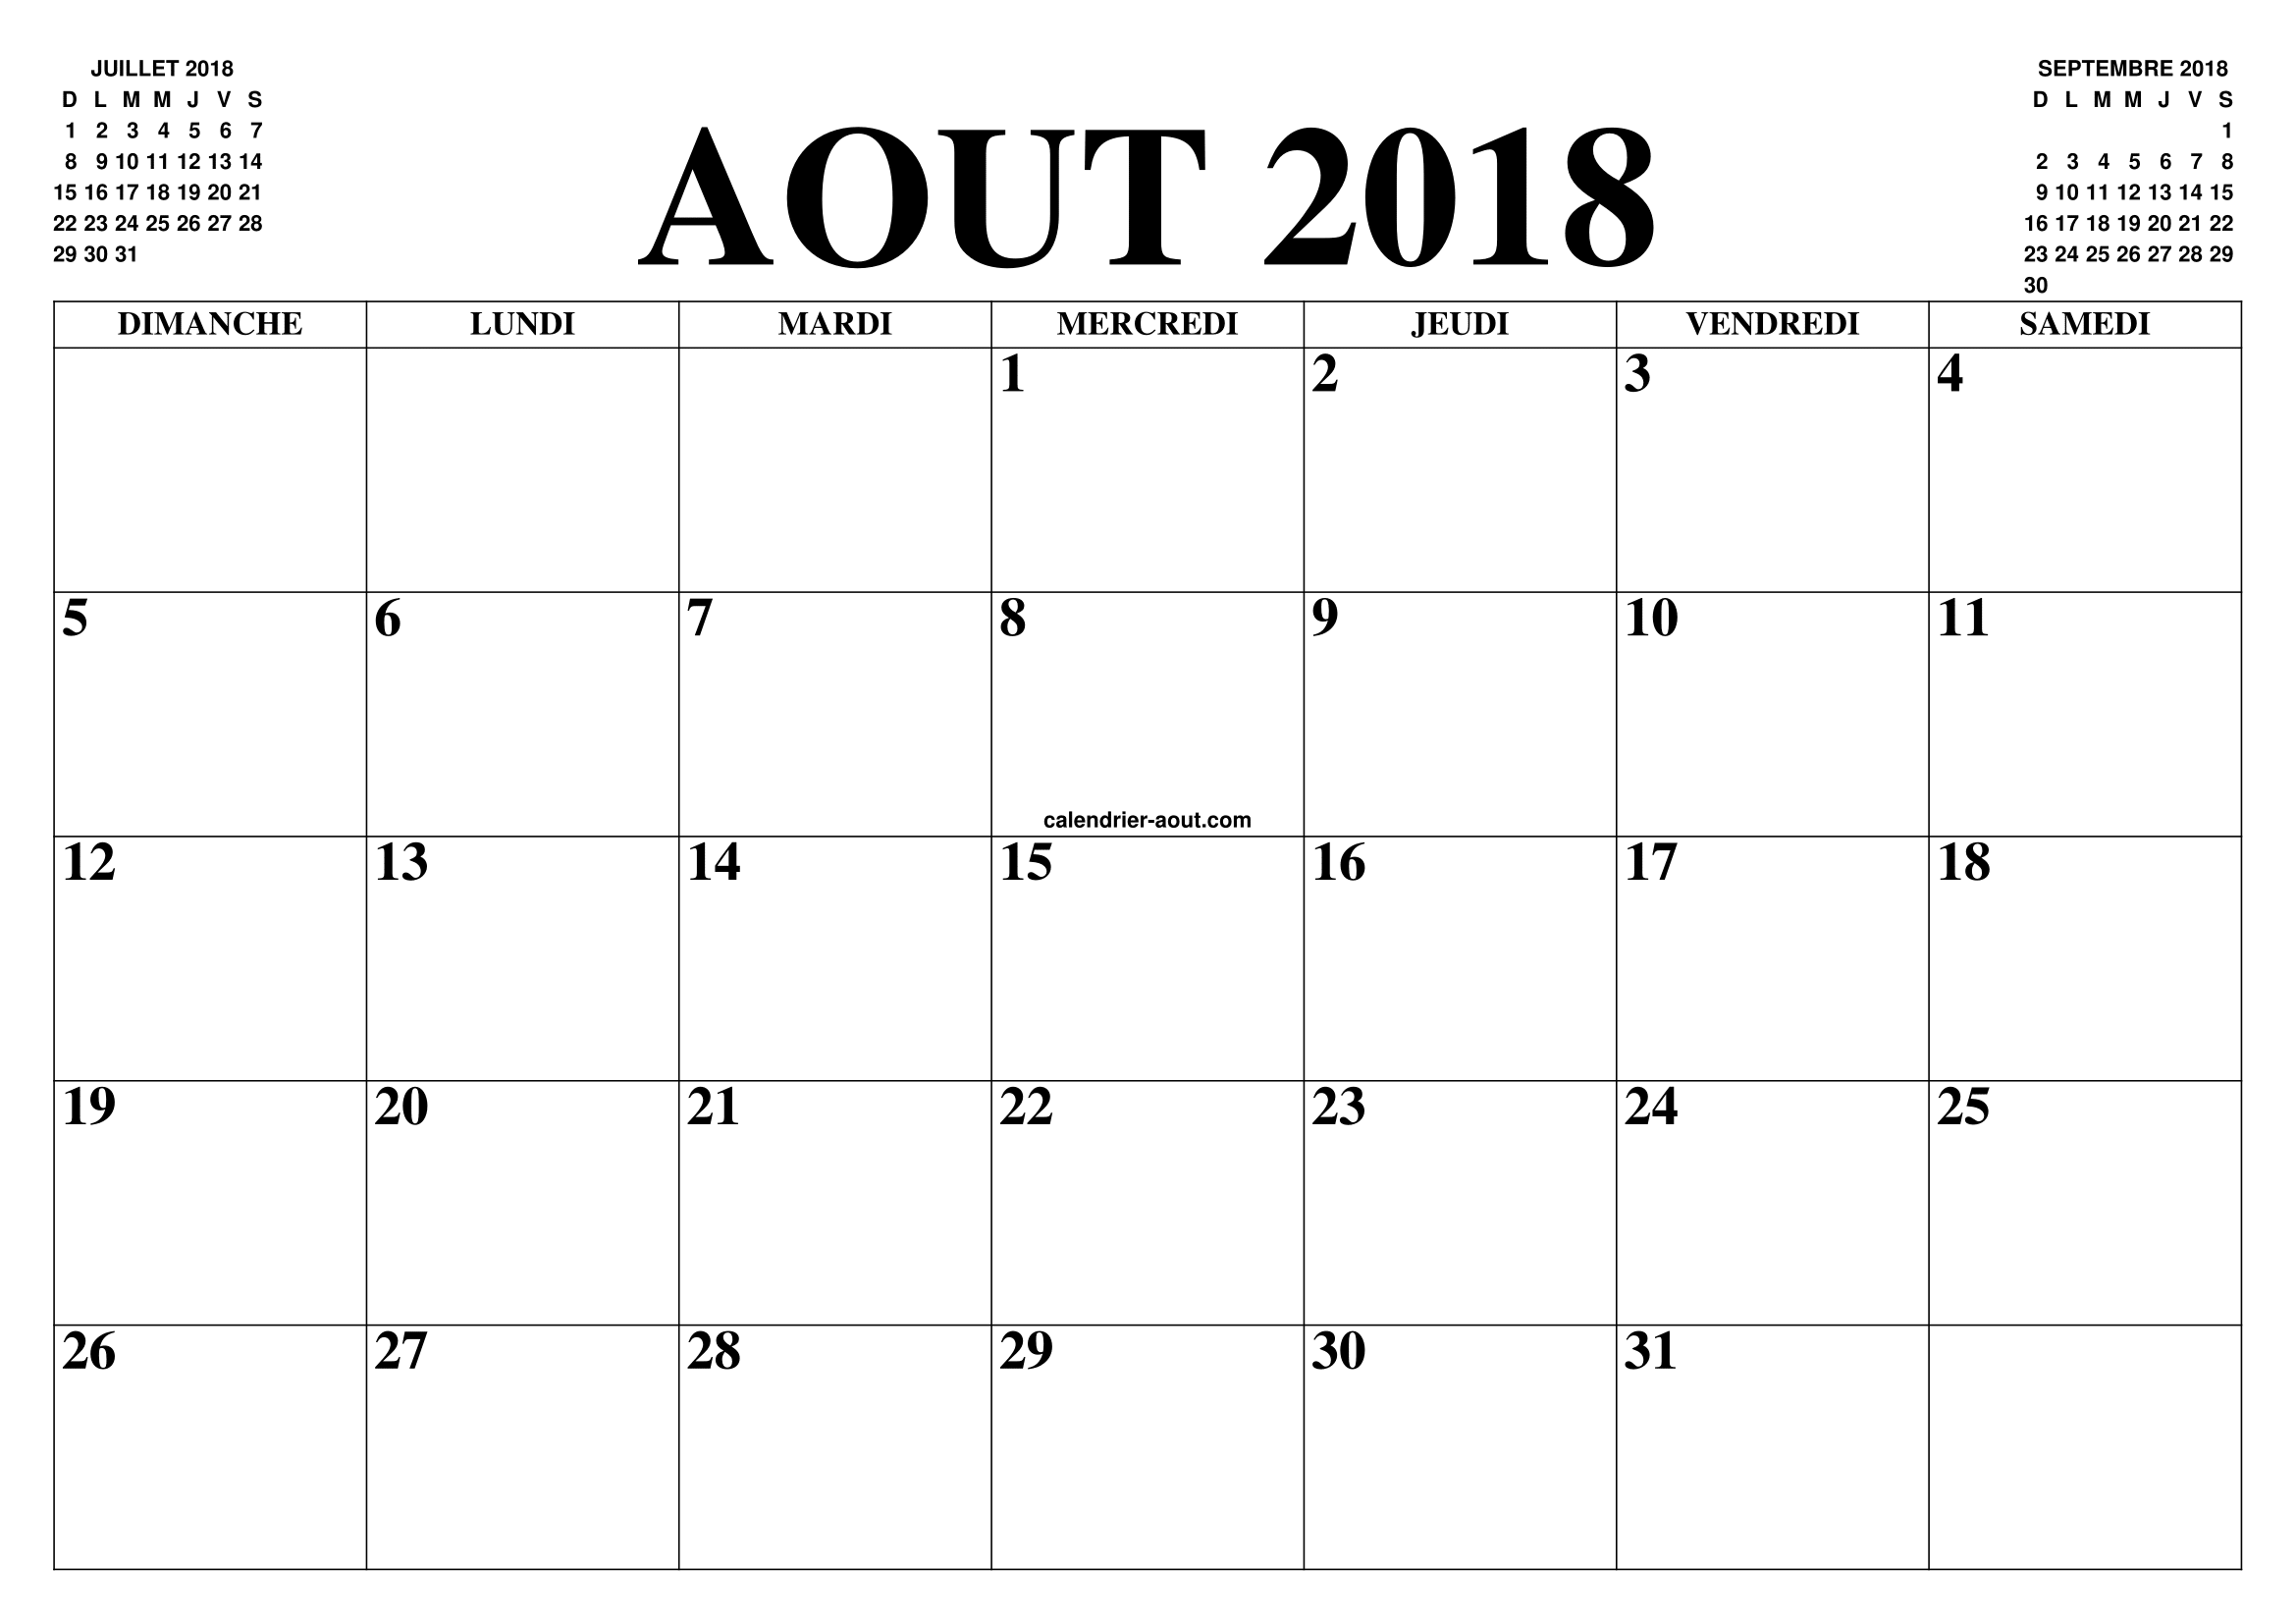 calendrier aout 2018 2019 le calendrier du mois de aout 2018 2019 gratuit a imprimer agenda. Black Bedroom Furniture Sets. Home Design Ideas